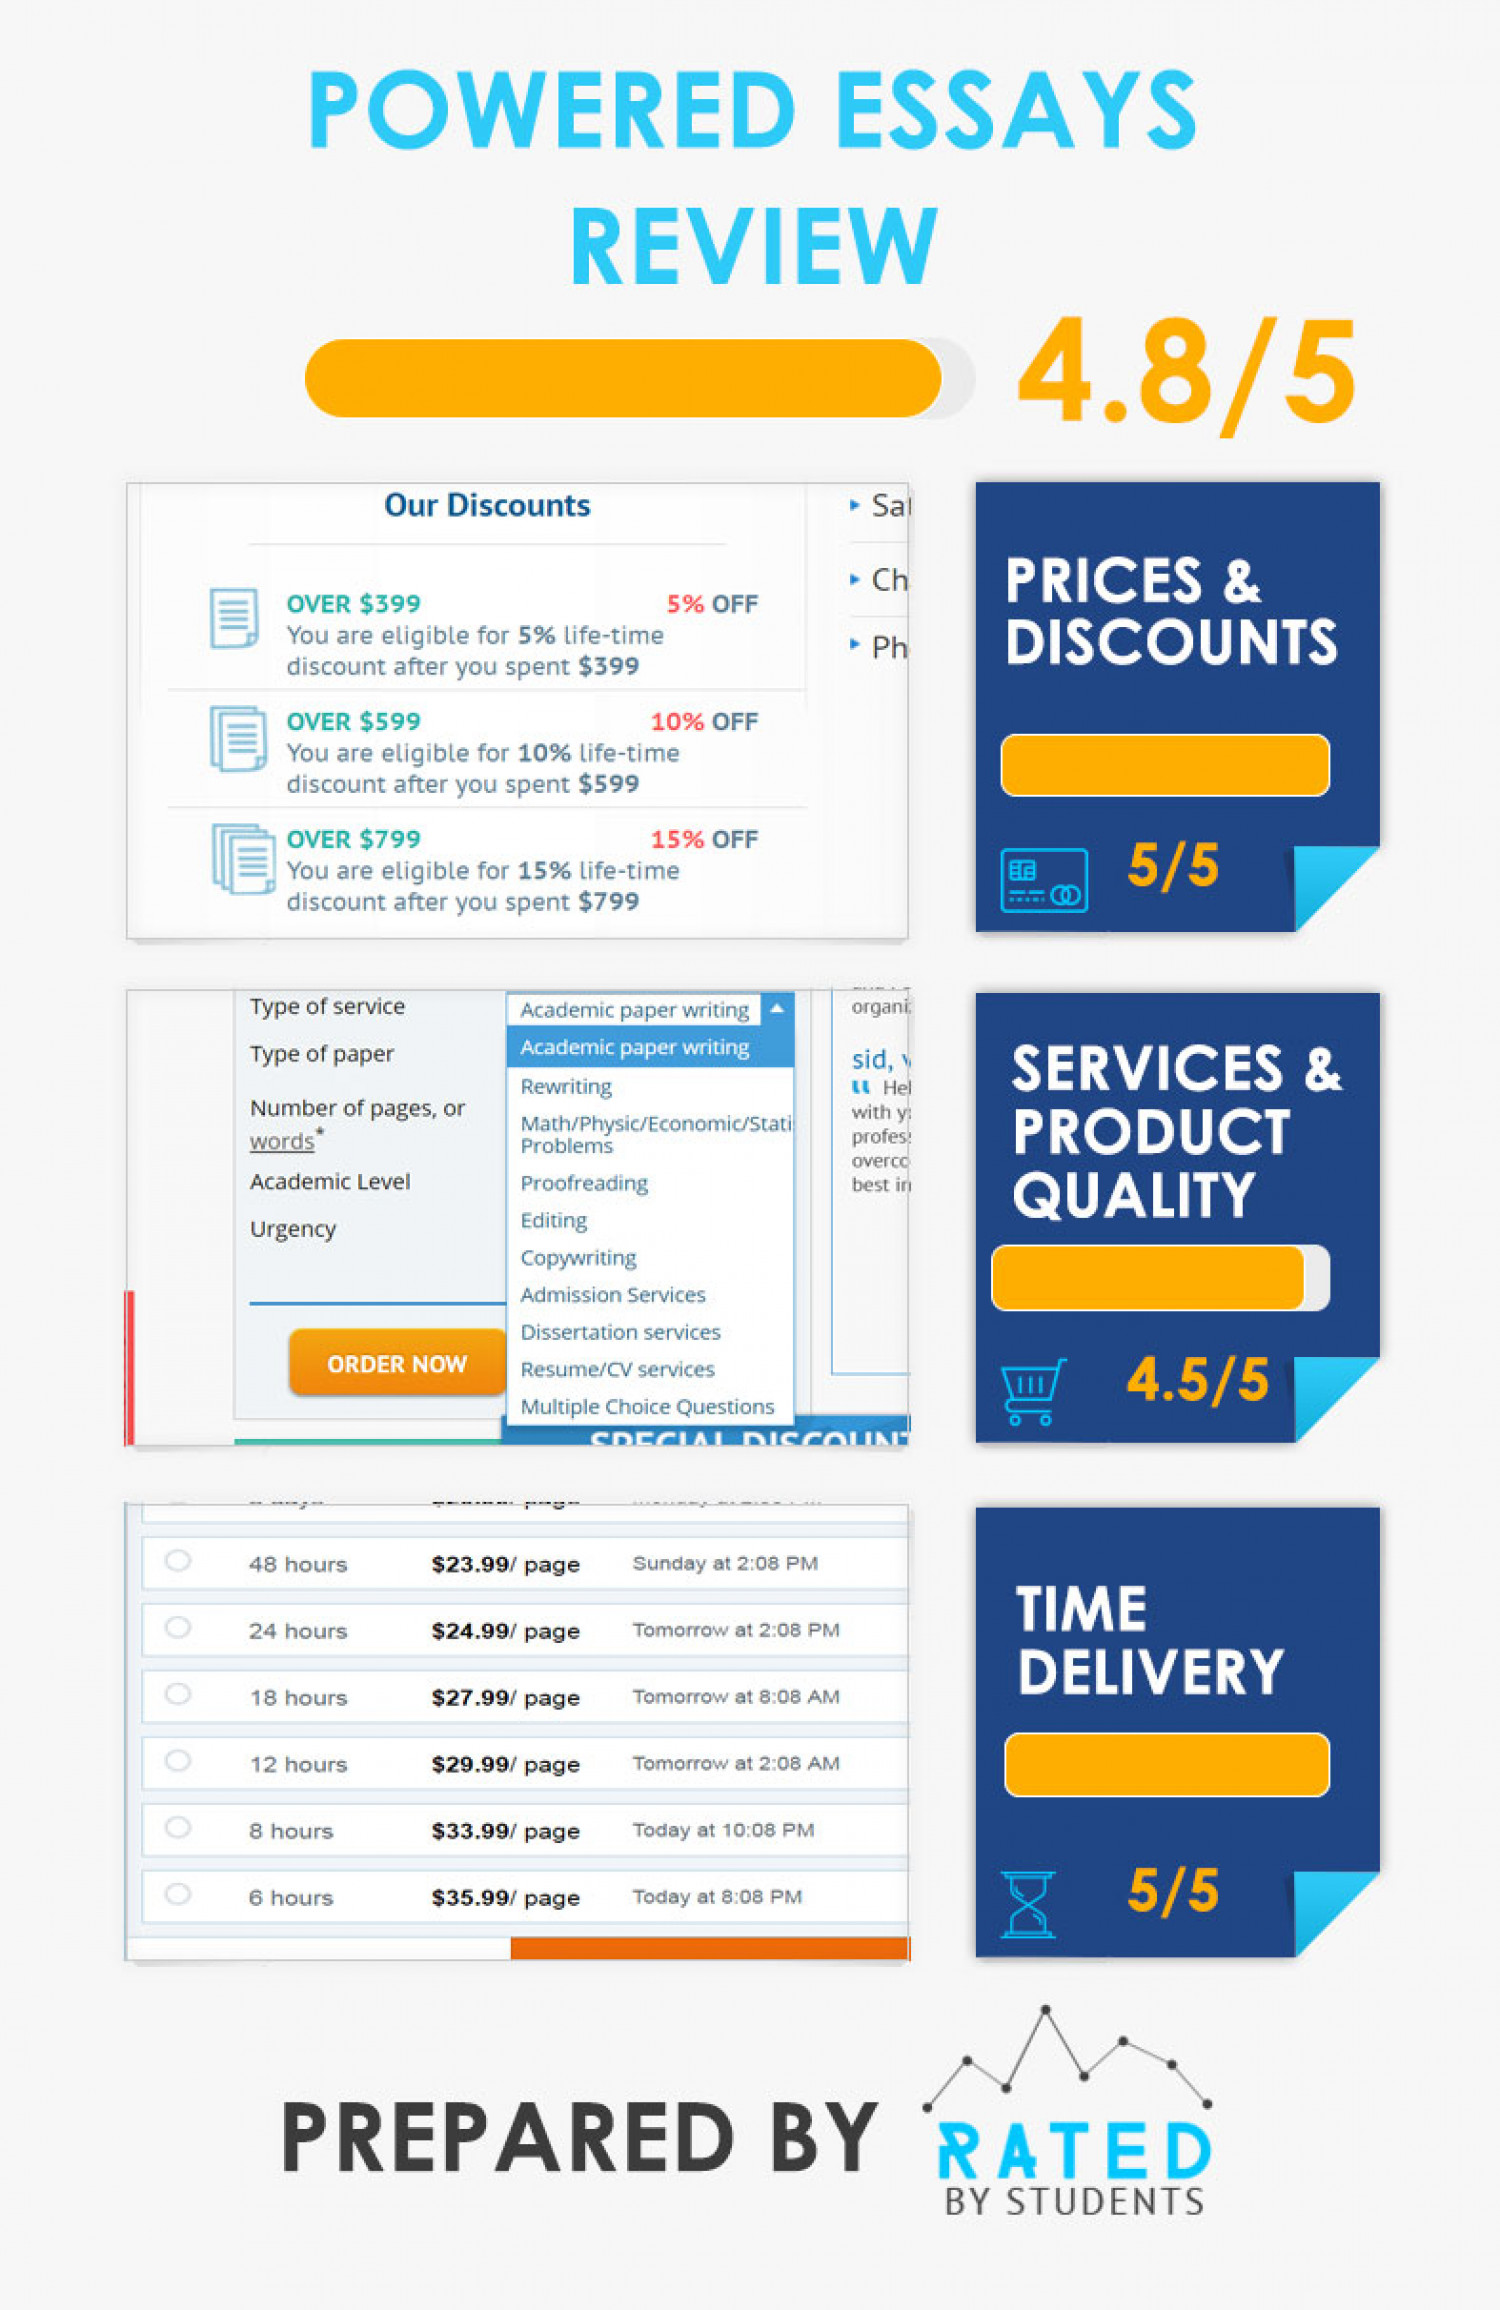 What PoweredEssays can offer to its customers? Infographic